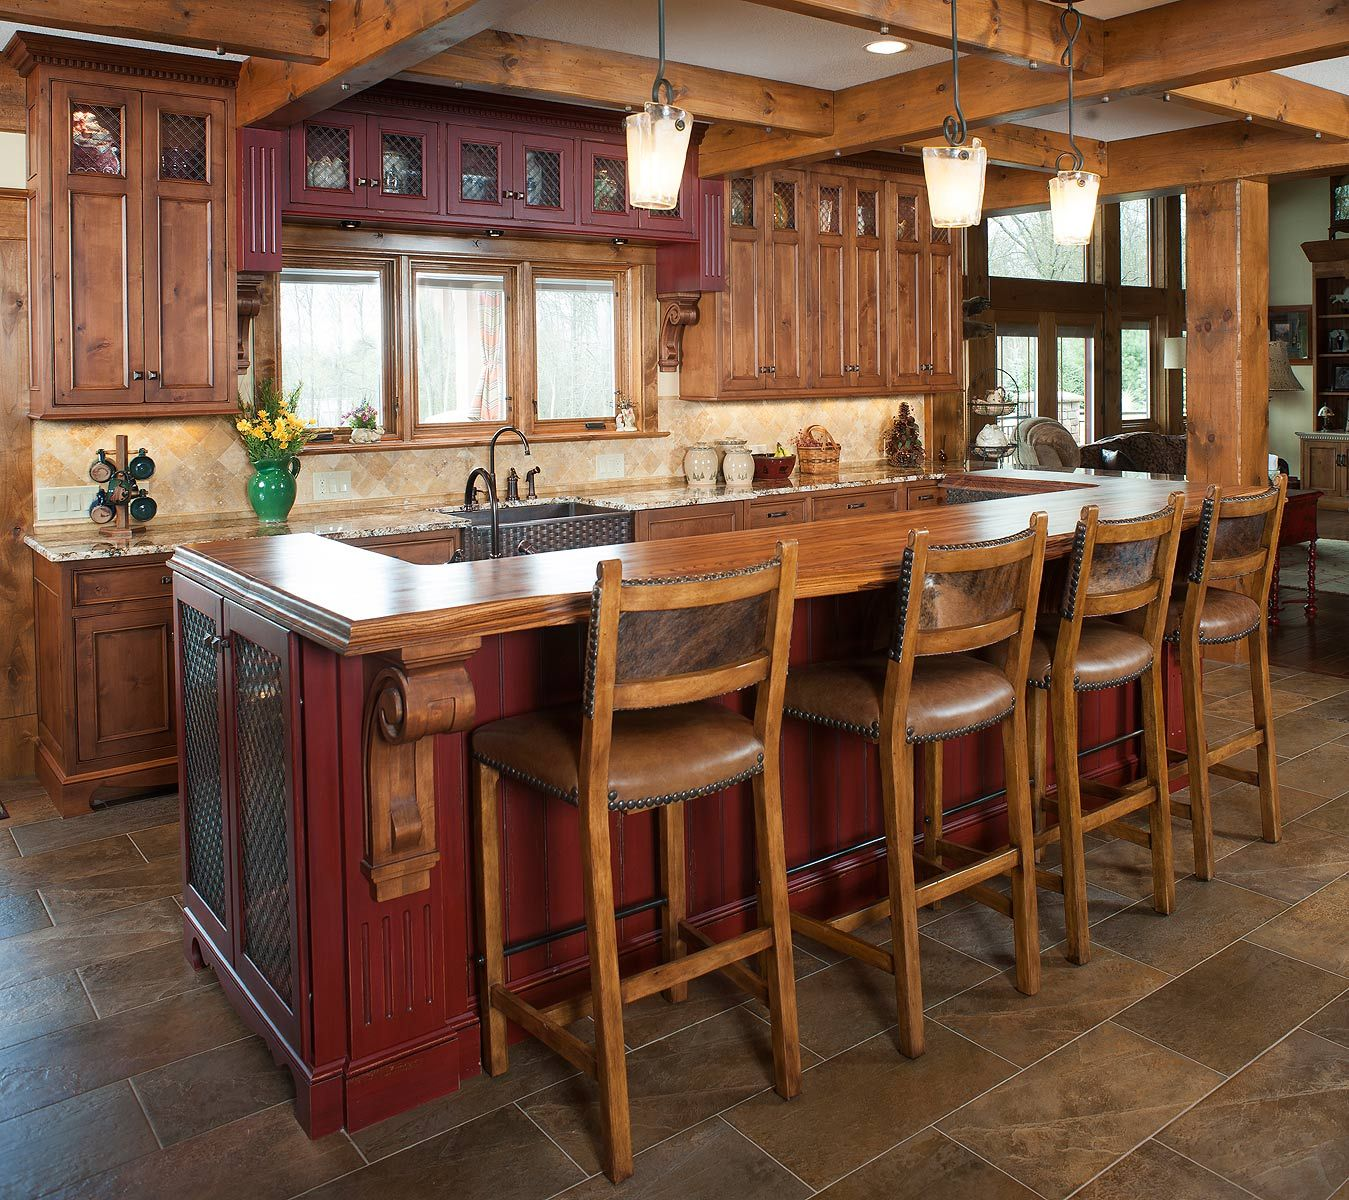 Kitchen Islands And: Rustic Kitchen And Island